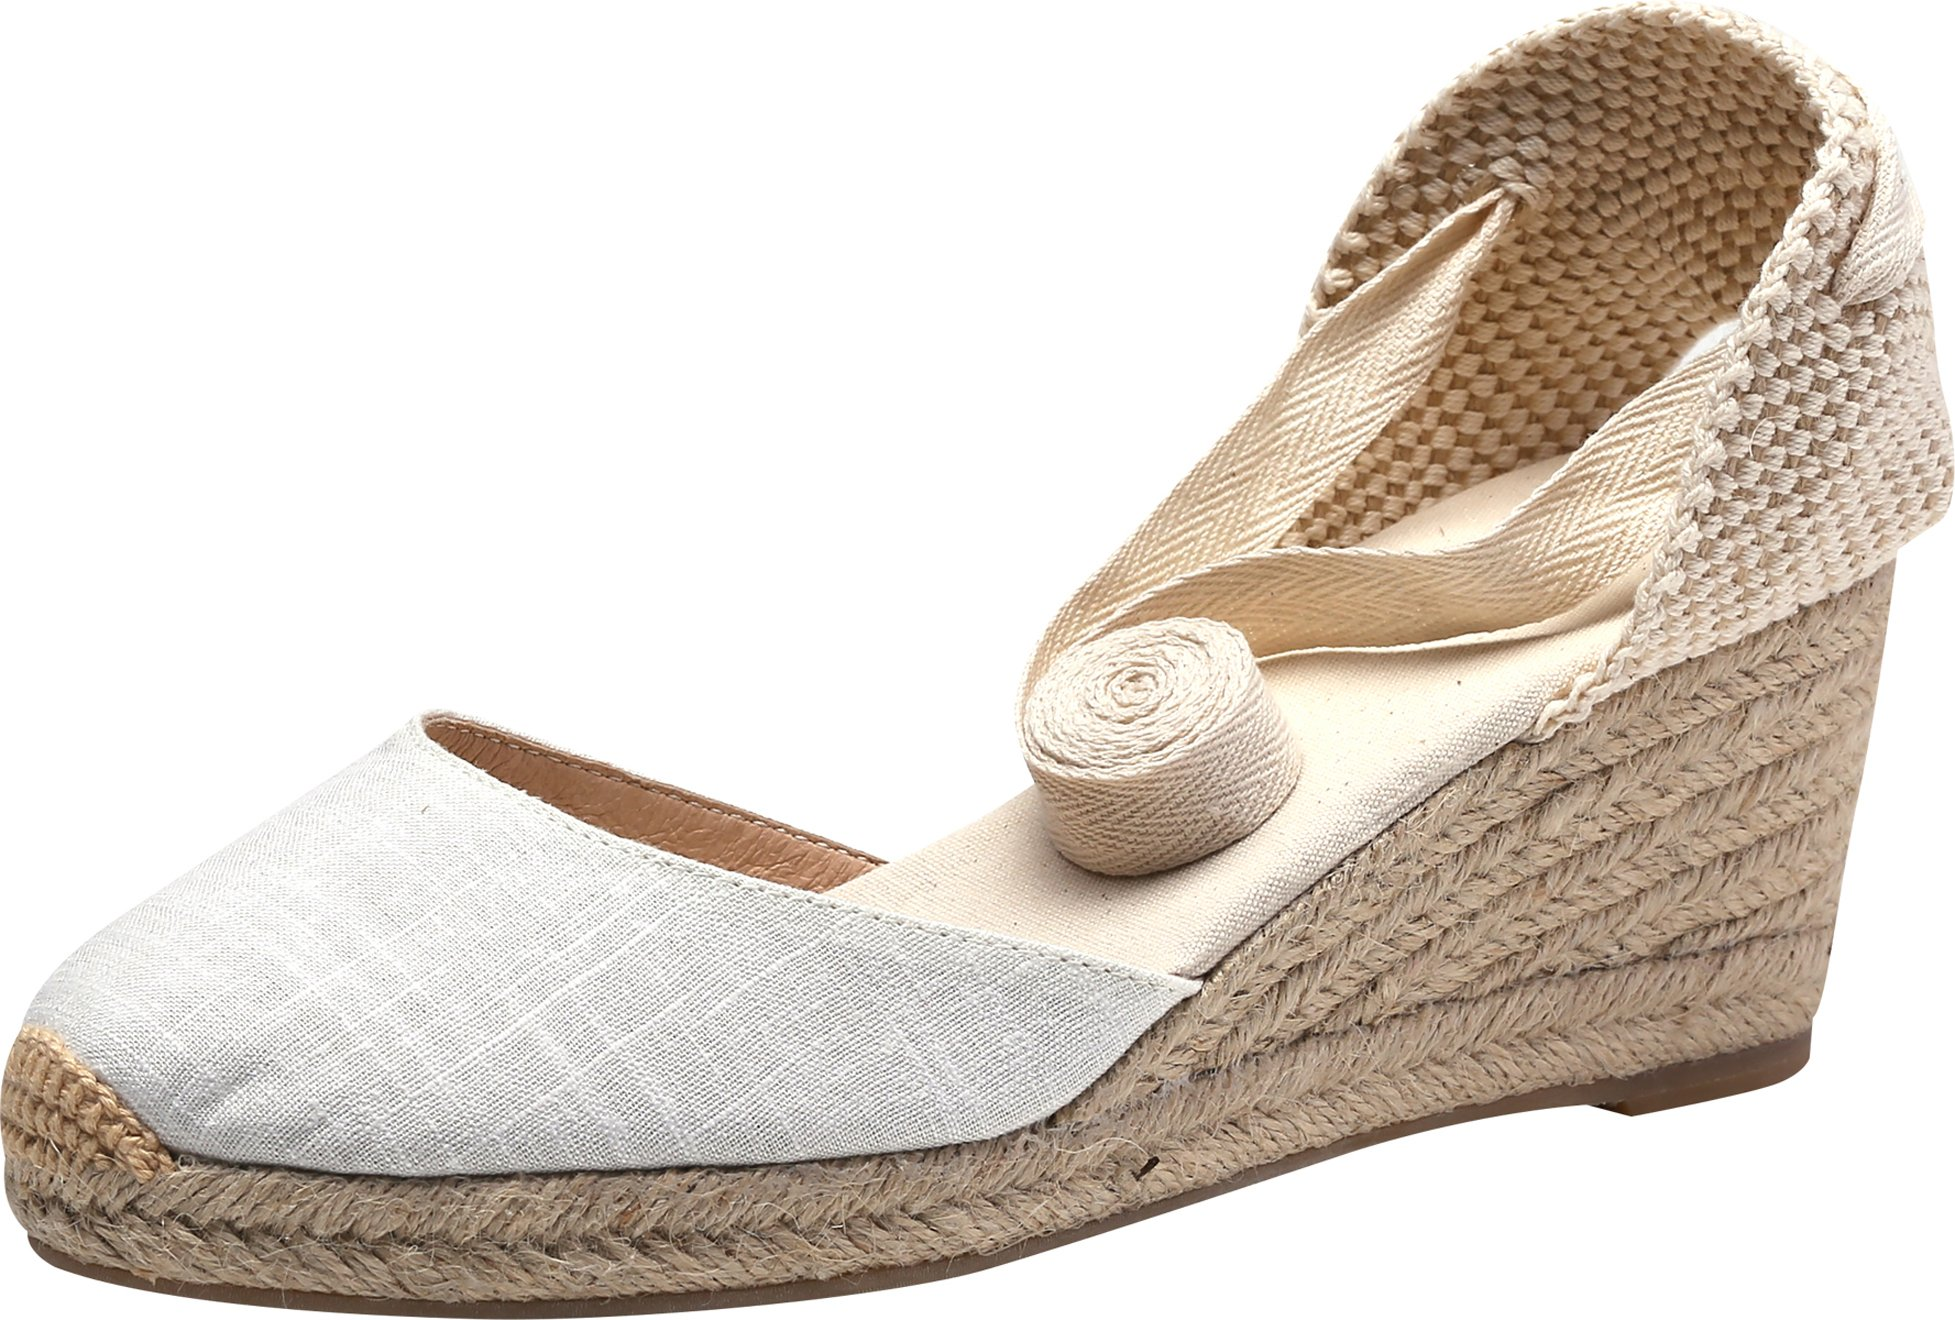 U-lite Women's Summer Leather Innersole Wedges Shoes, Ankle-Wrap Pompom Sandals White7